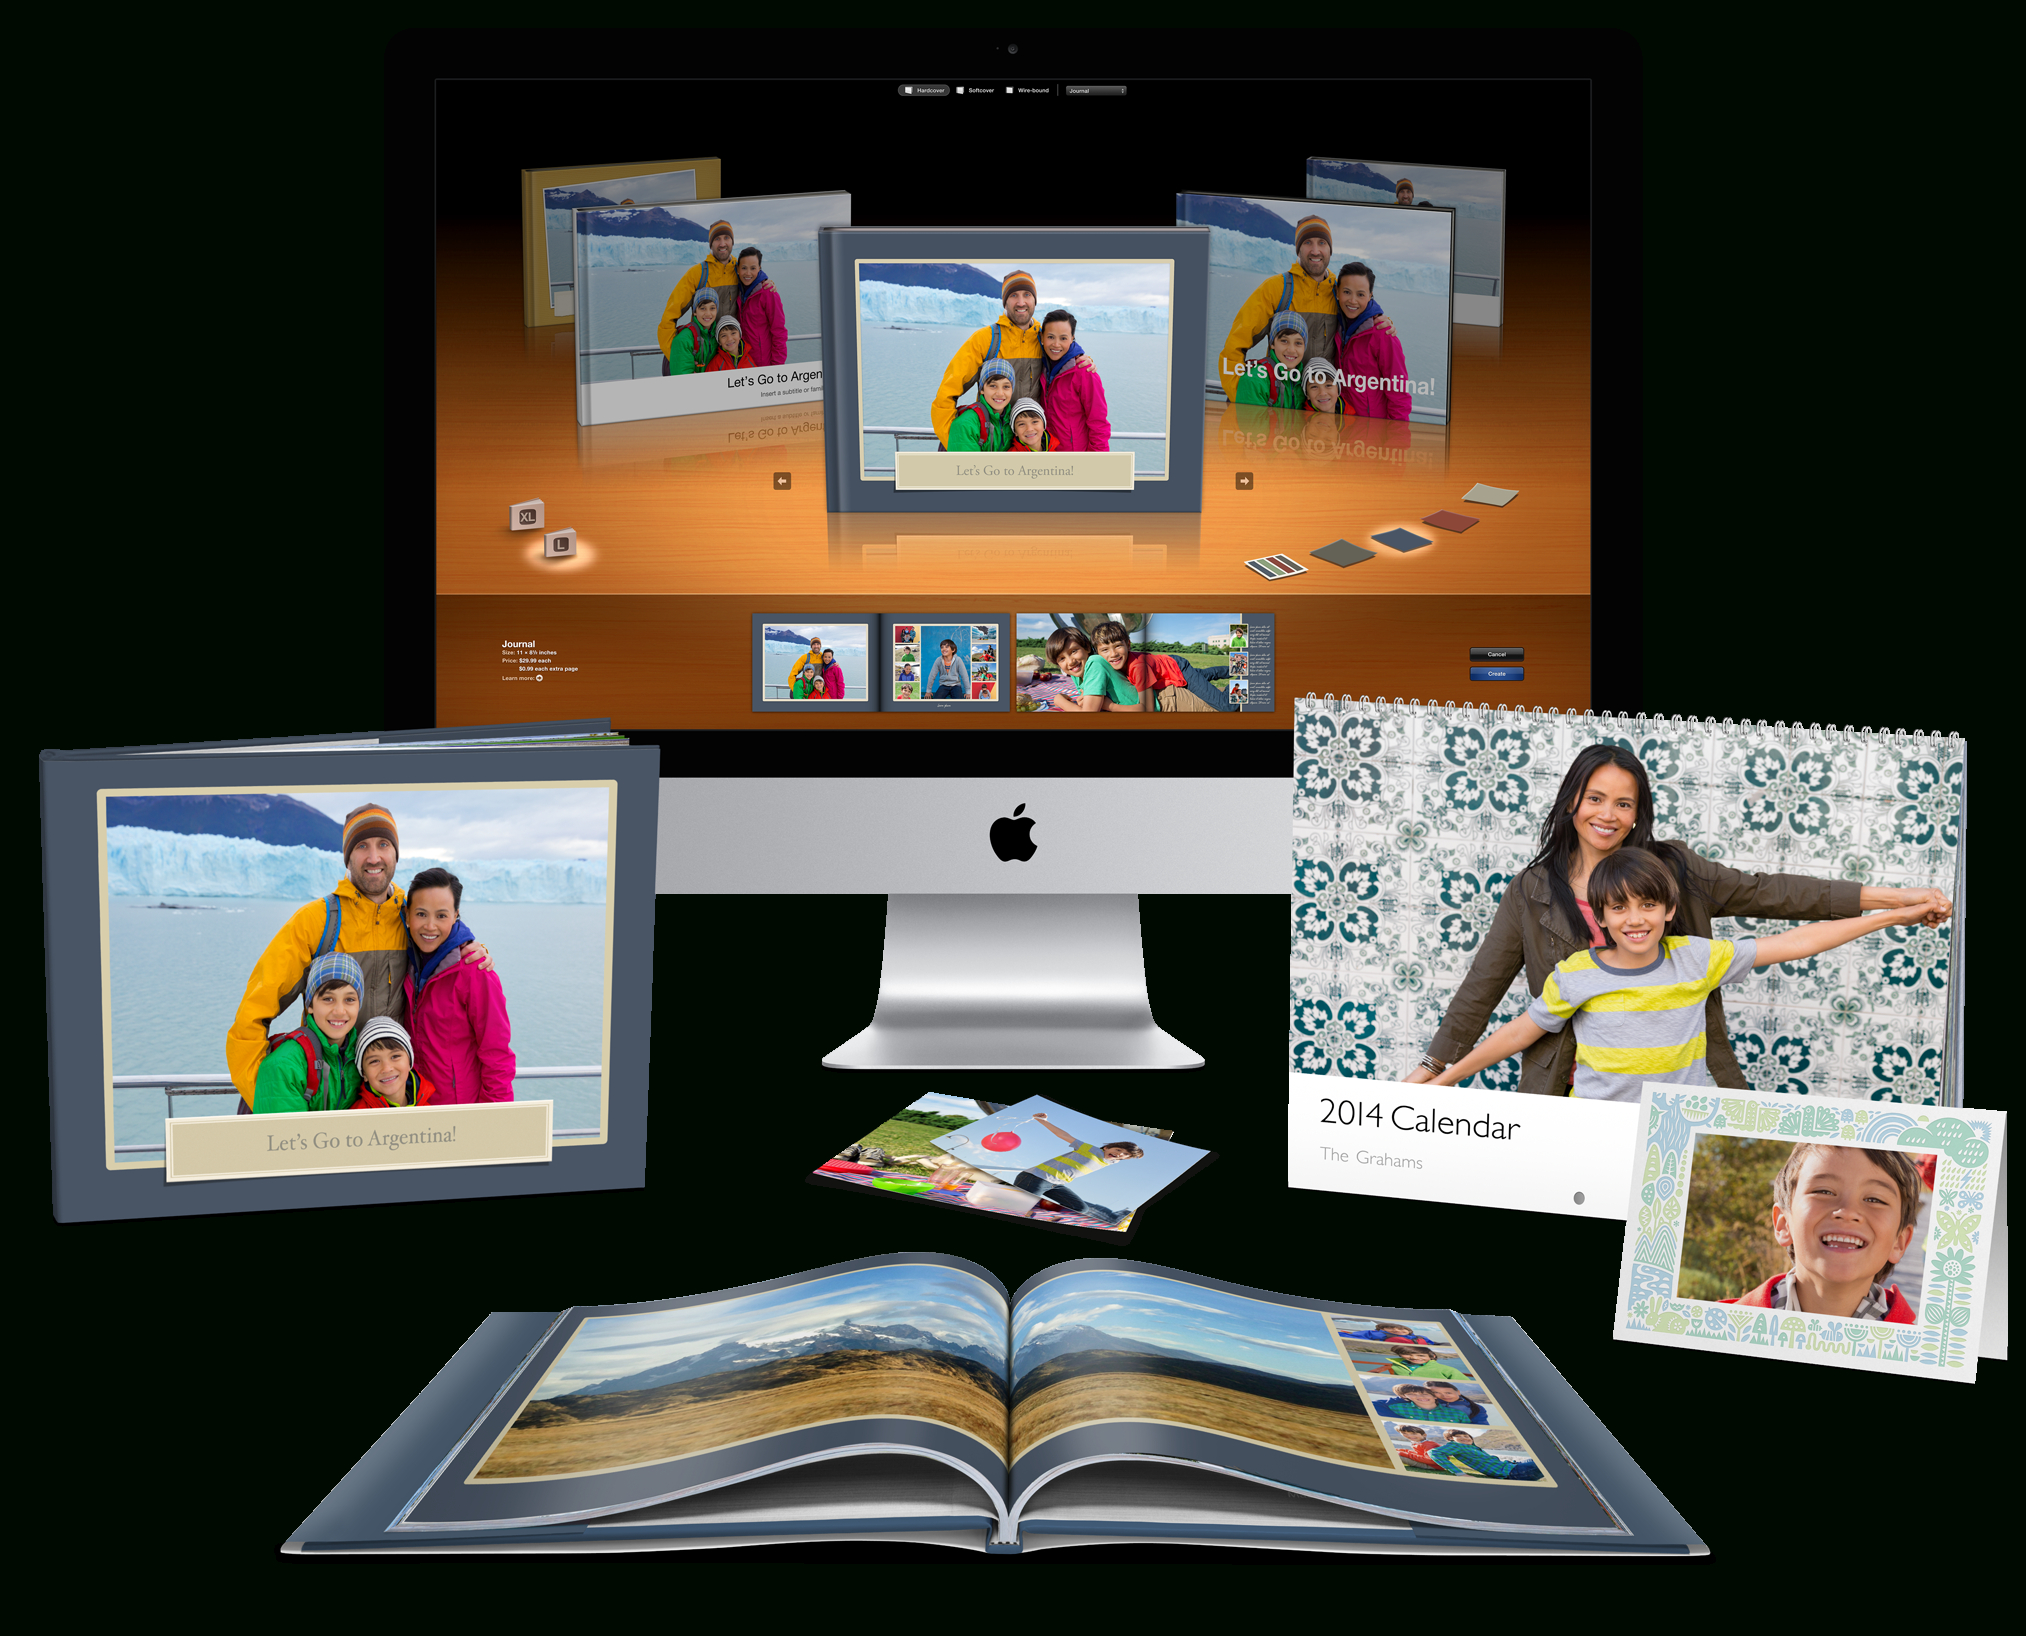 Apple - Print Products For Mac Start At $30 For Photo Book